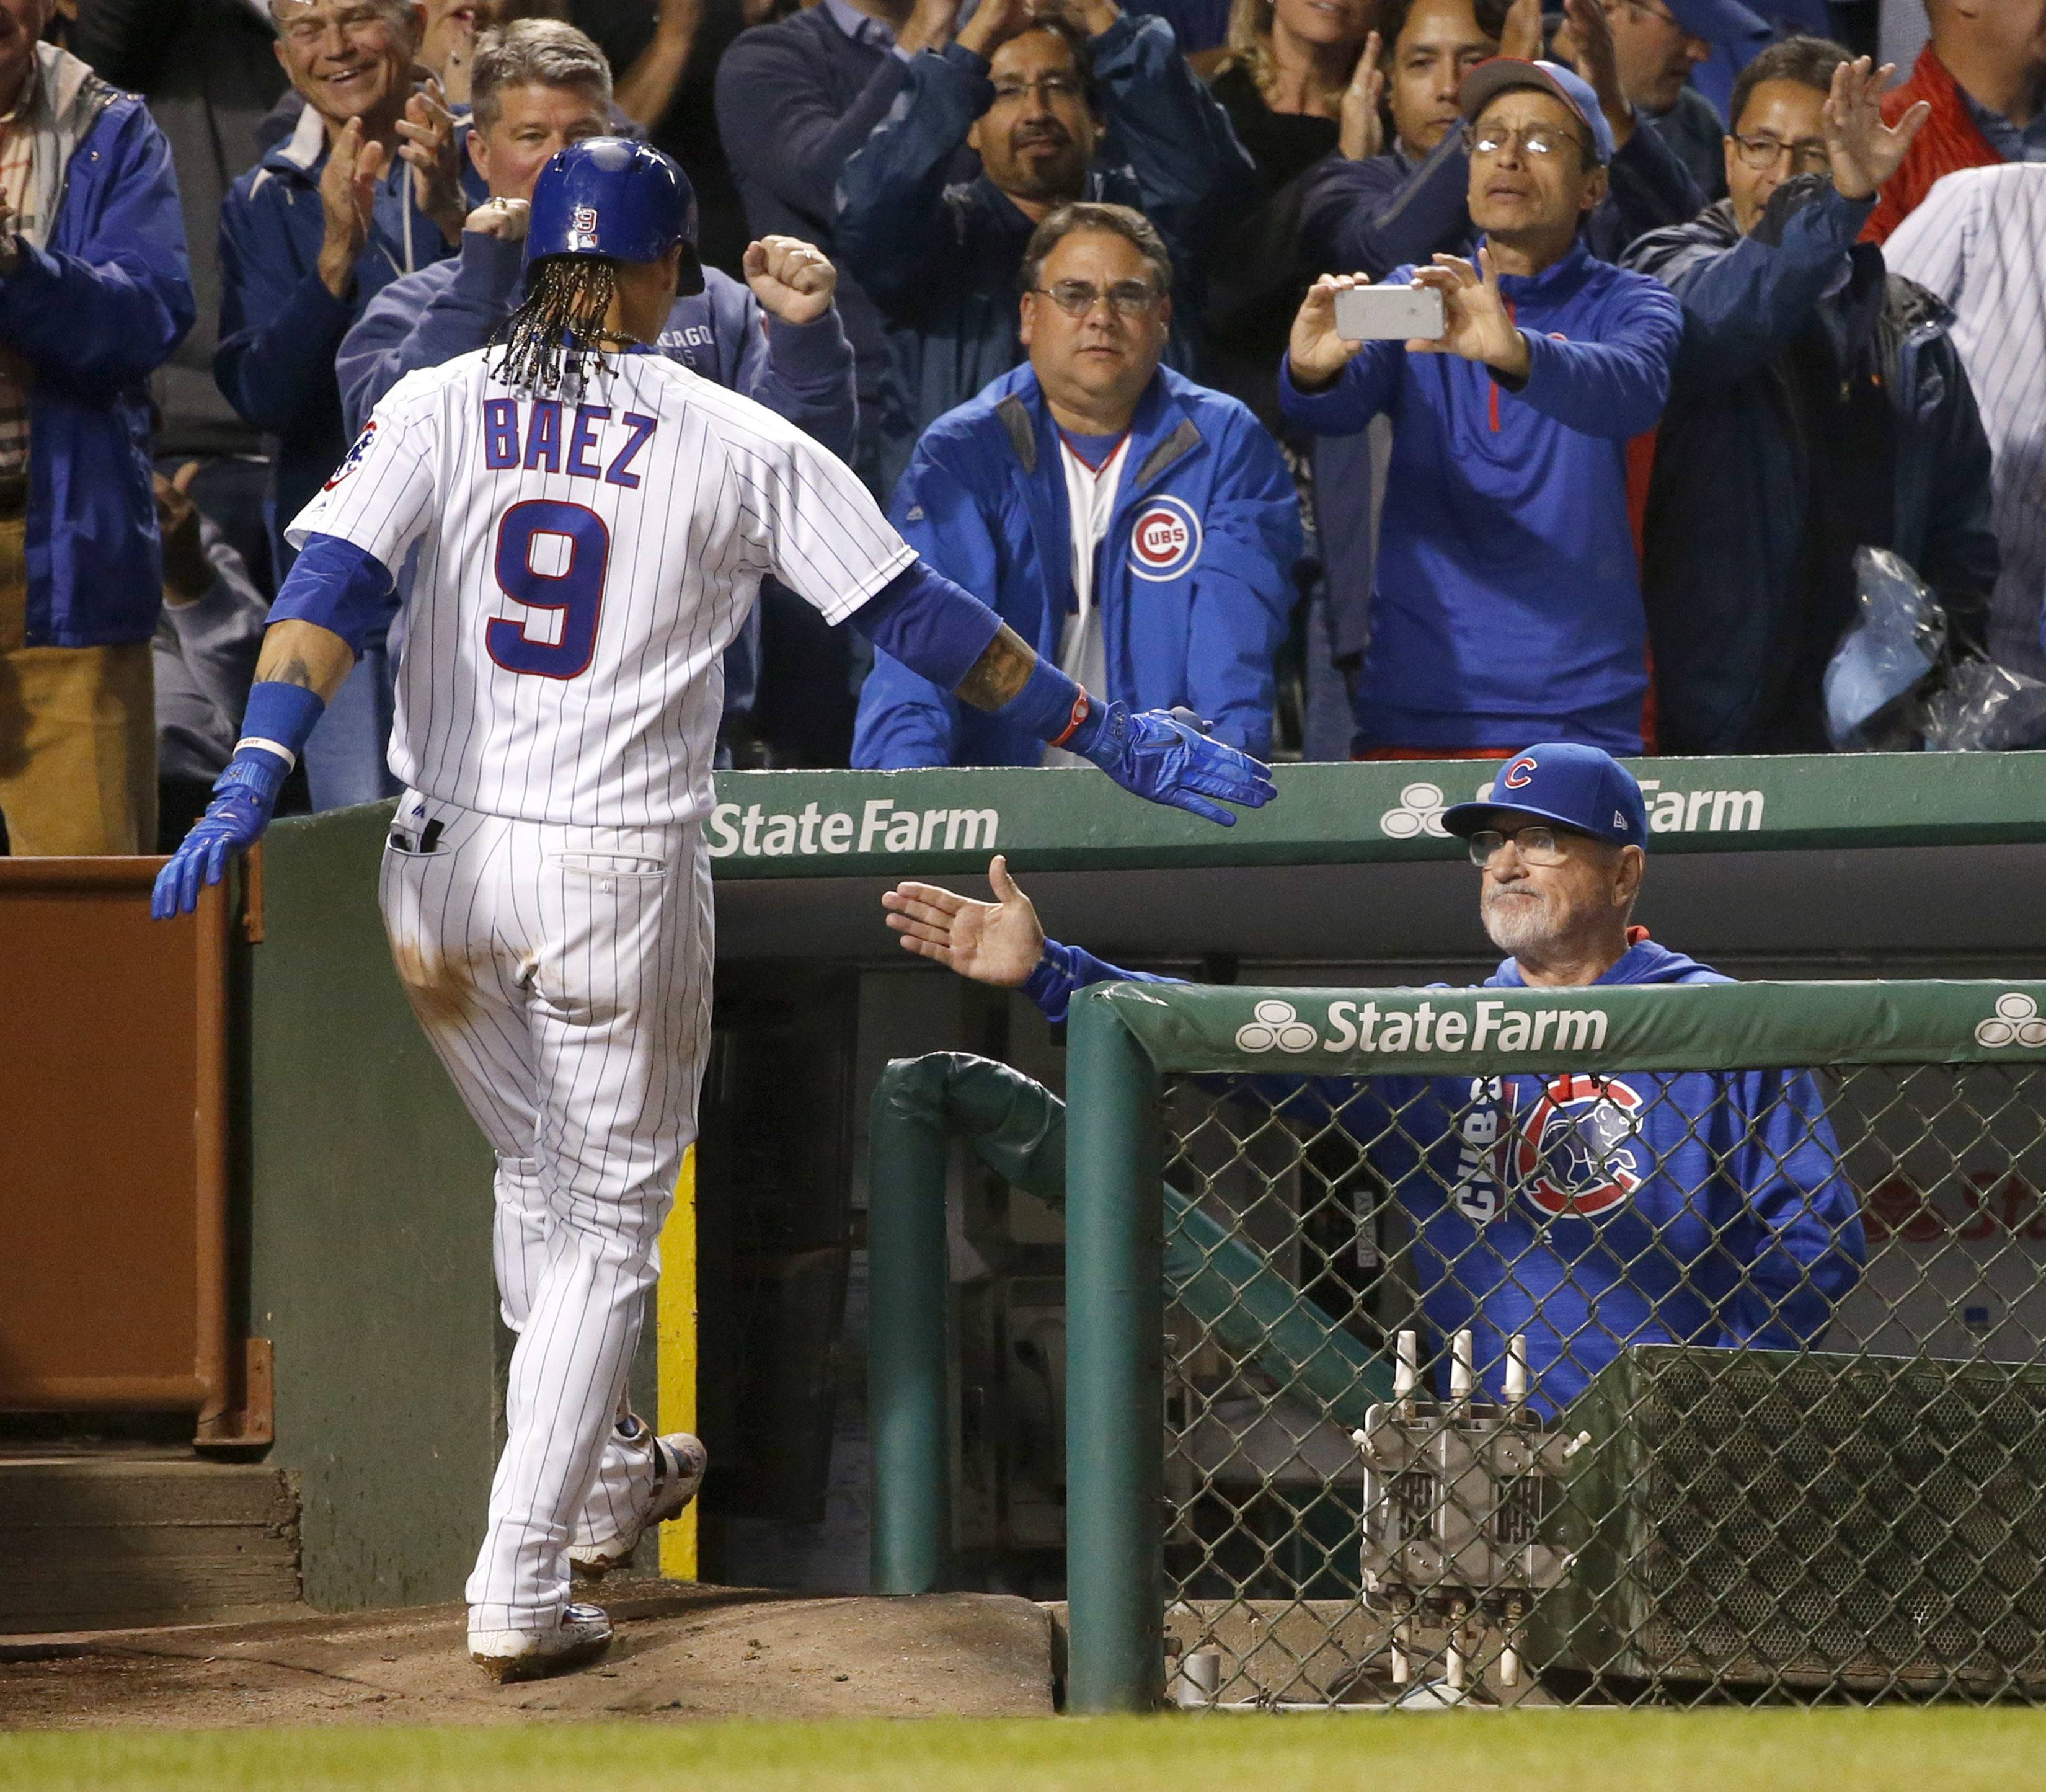 Chicago Cubs manager Joe Maddon, right, greets Javier Baez at the dugout after Baez's home run off New York Mets relief pitcher Chasen Bradford during the seventh inning of a baseball game Wednesday, Sept. 13, 2017, in Chicago. (AP Photo/Charles Rex Arbogast)